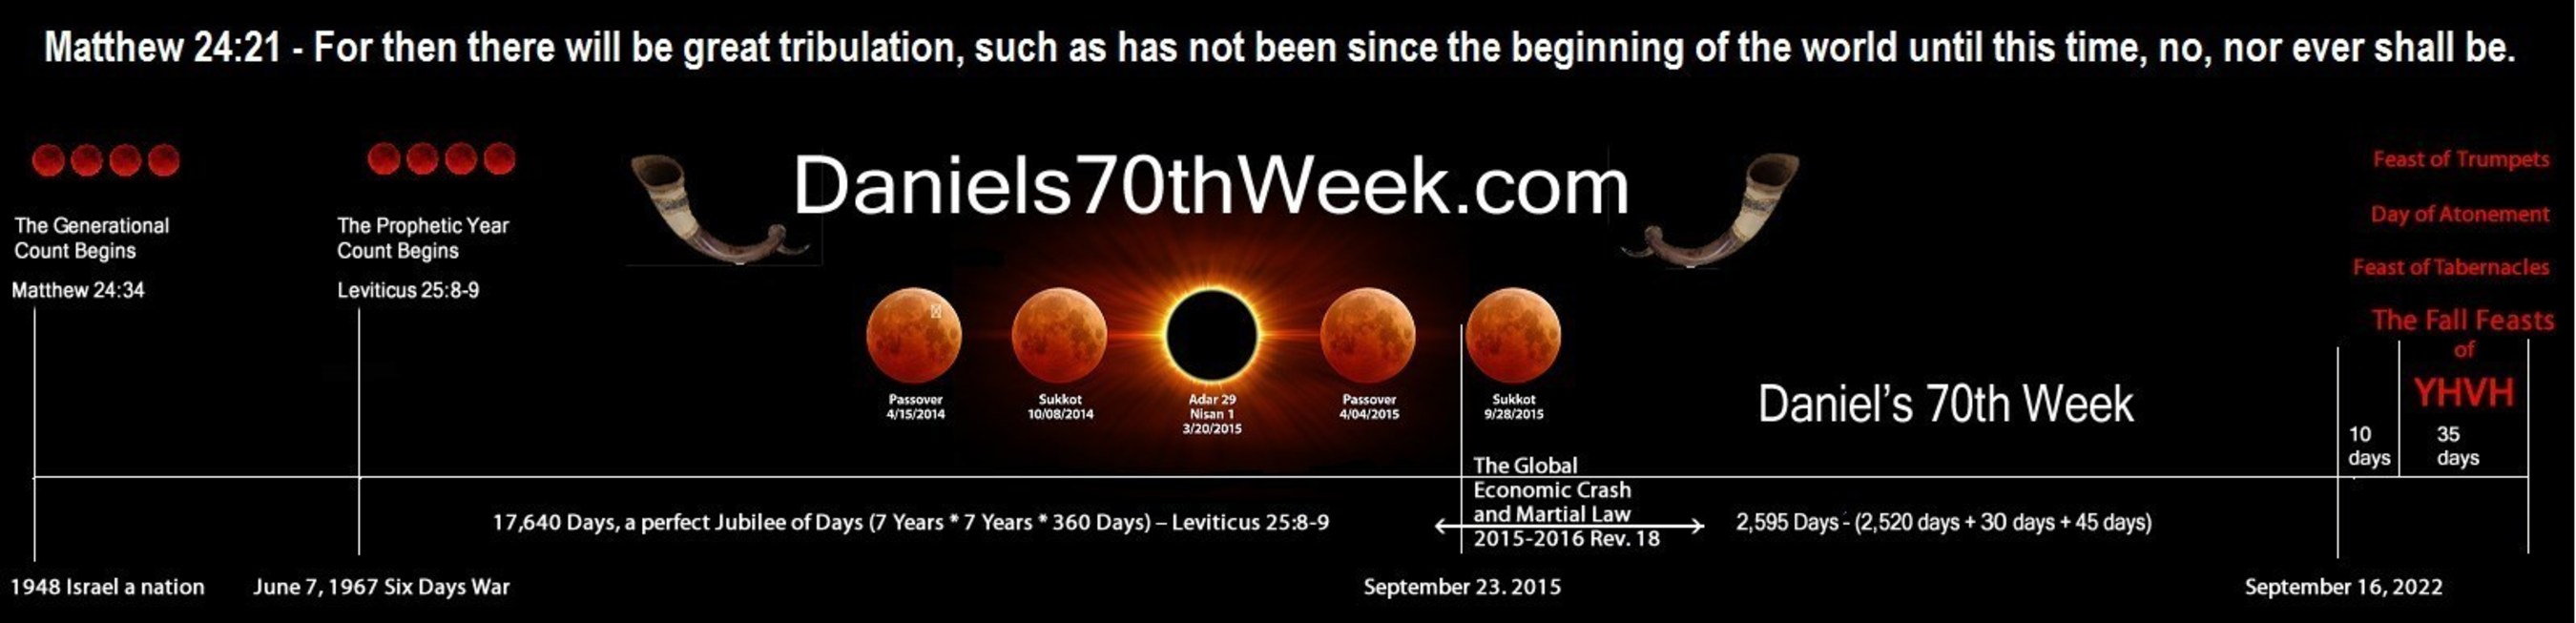 The Church Of Acts Announces Daniel's 70th Week Begins September 23, 2015